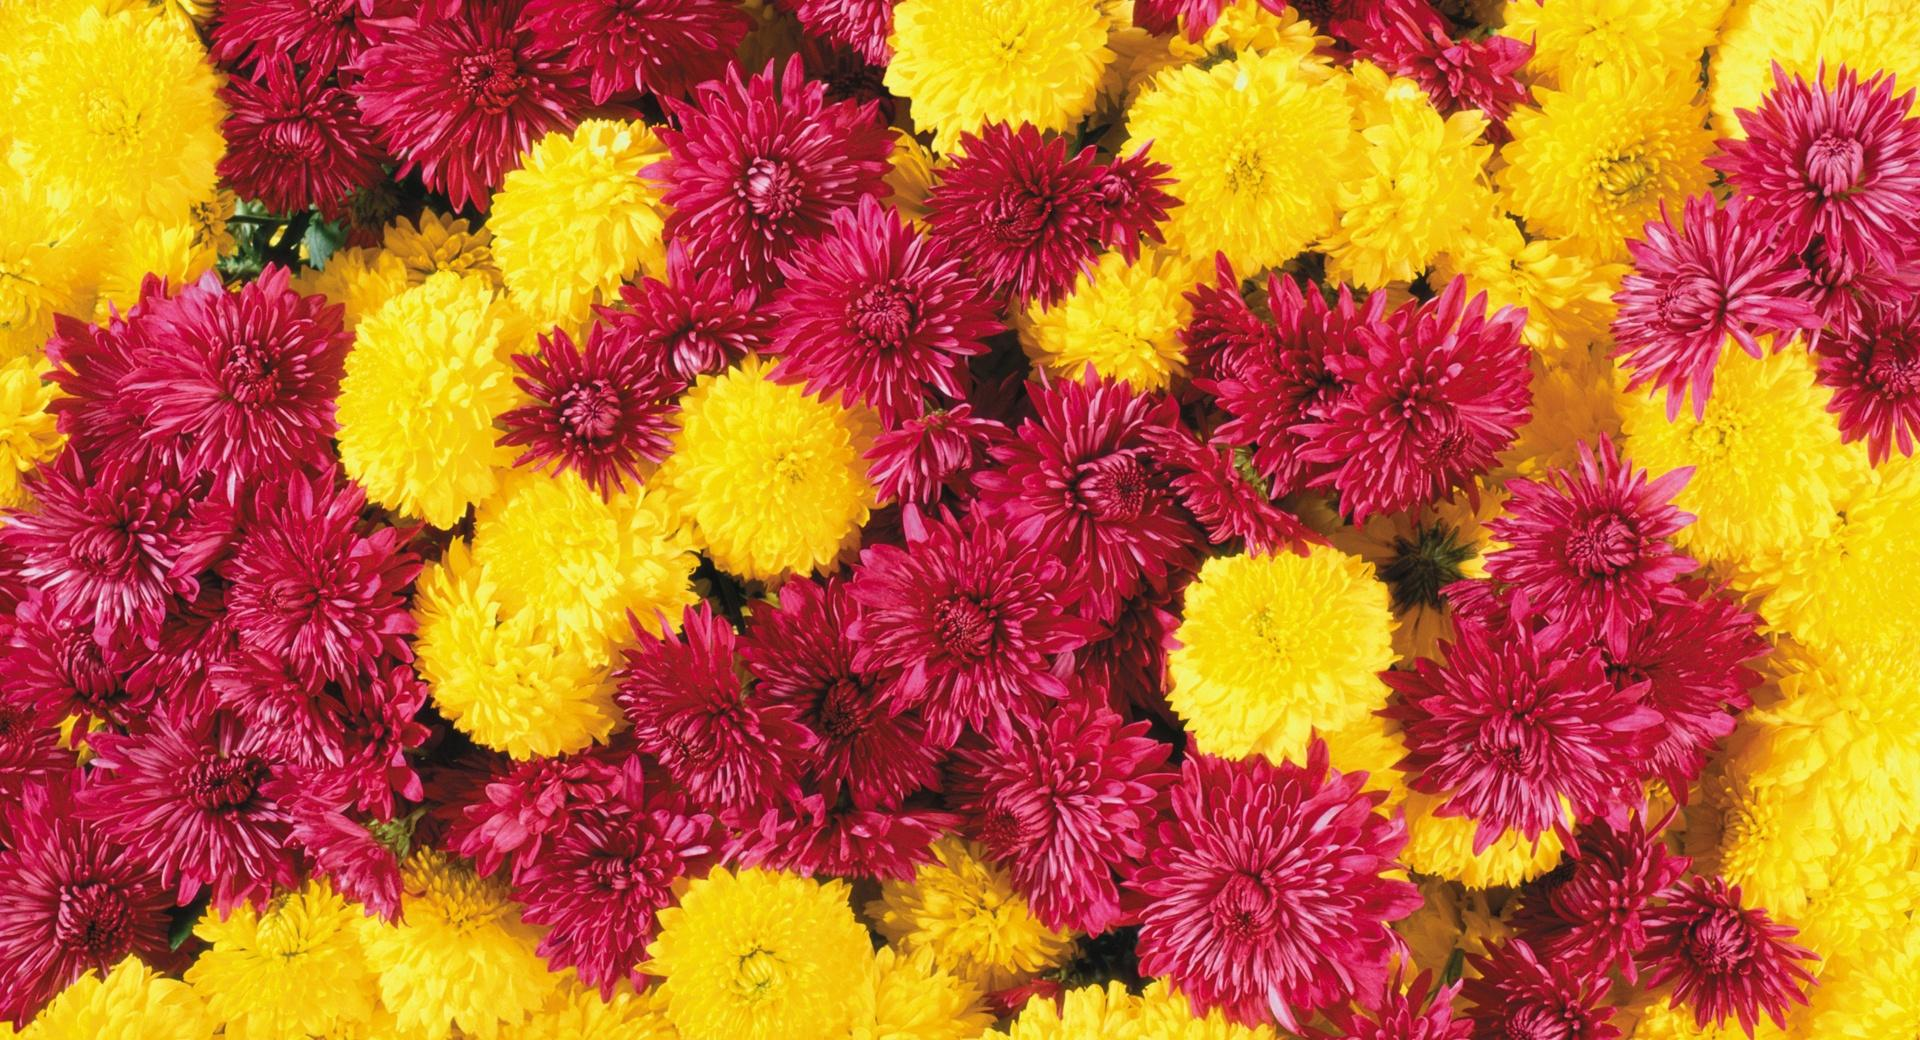 Mums Flowers wallpapers HD quality